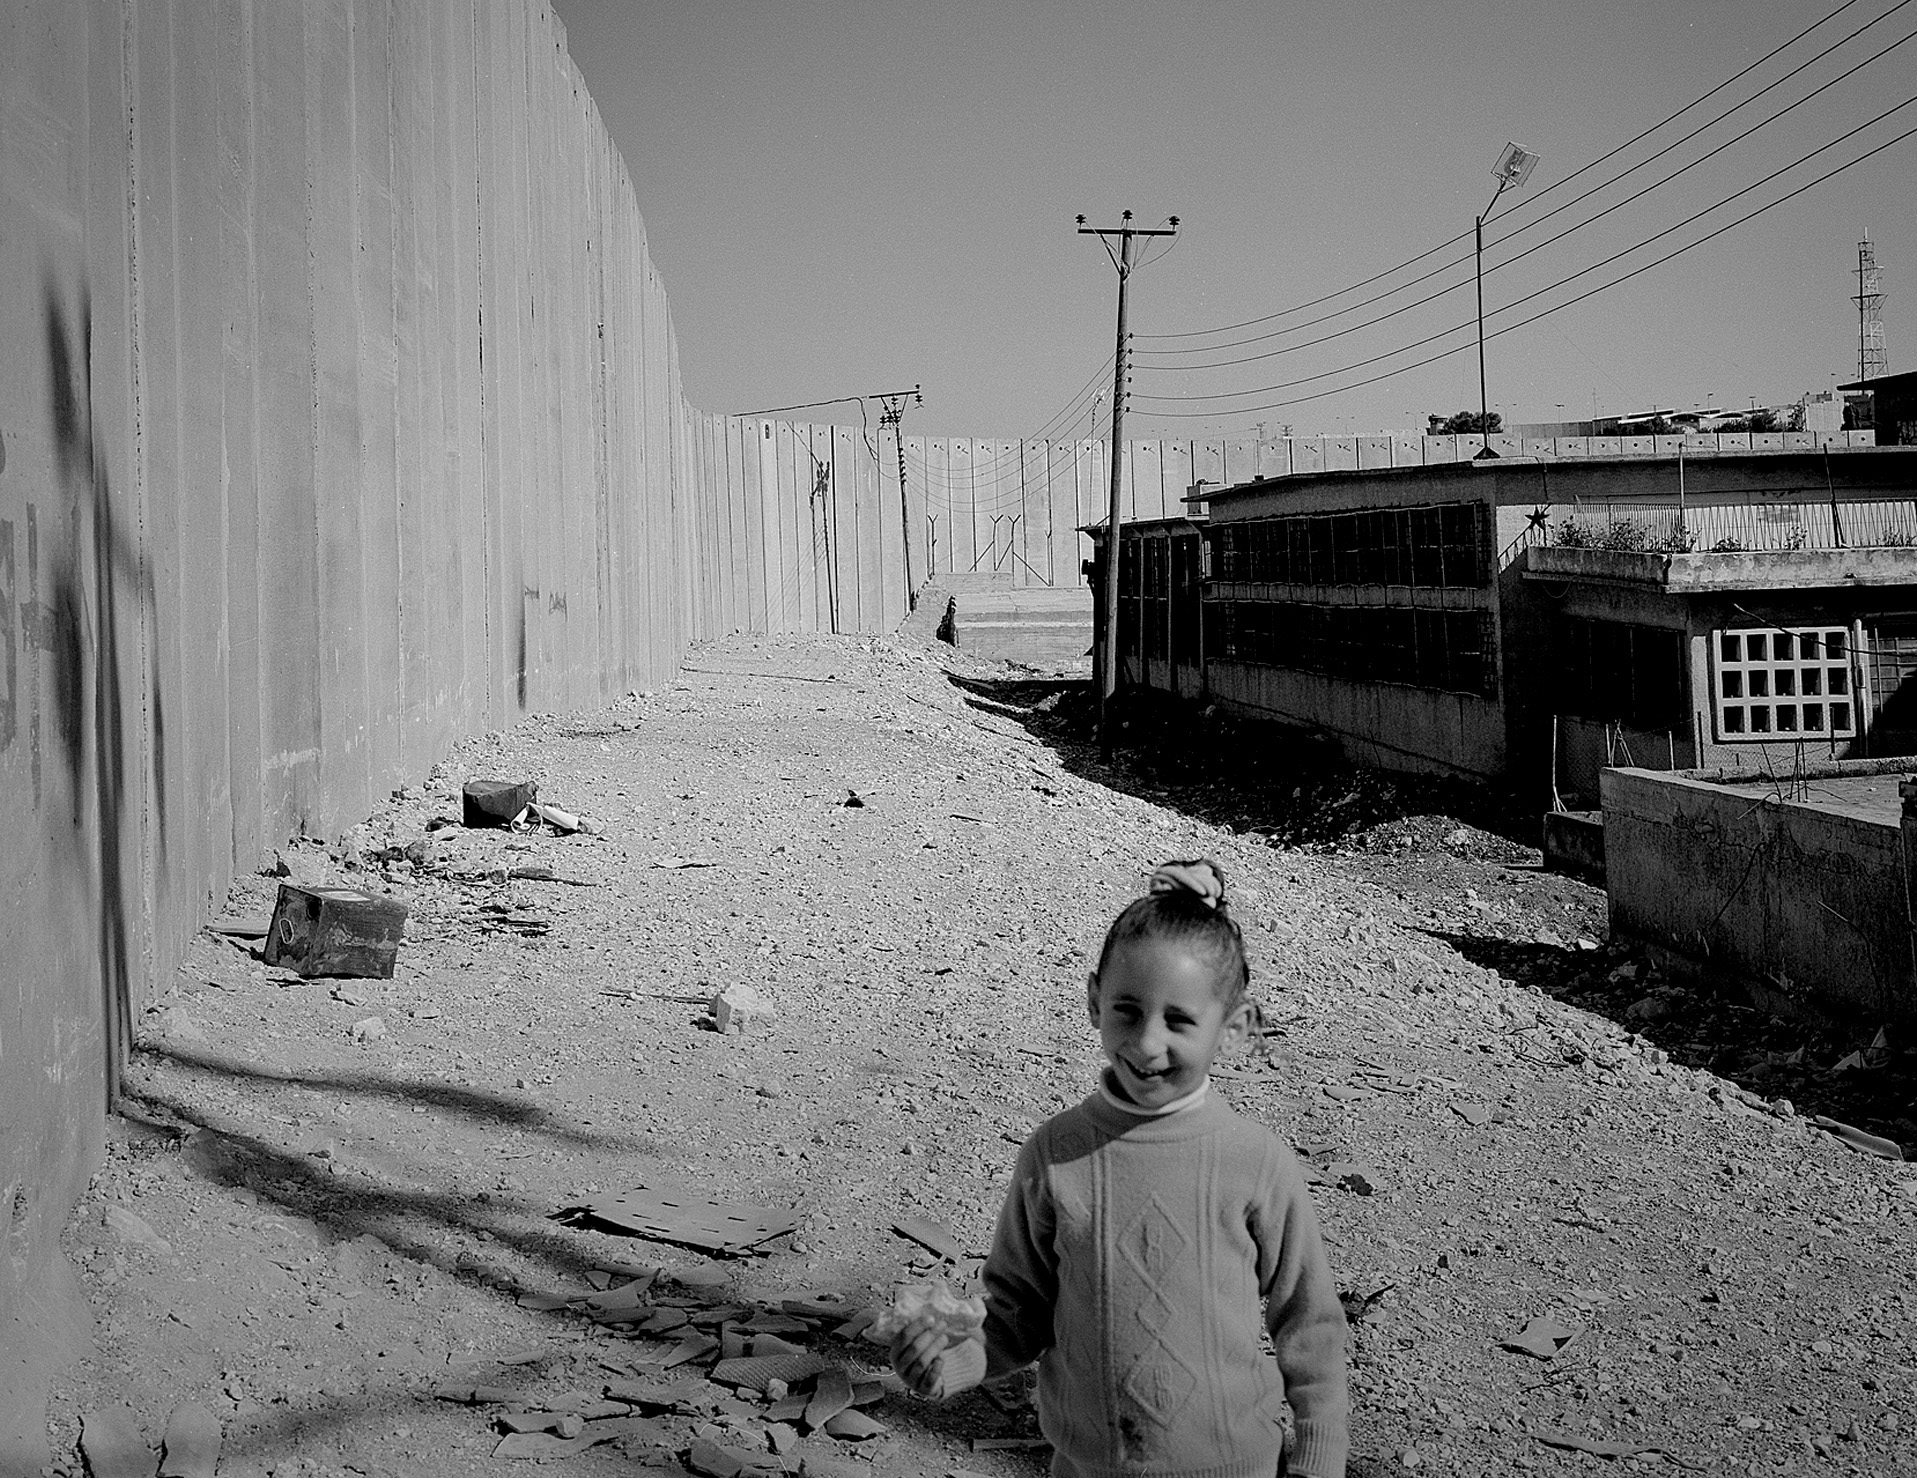 A young girl looks at the viewer with a high concrete wall stretching out behind her